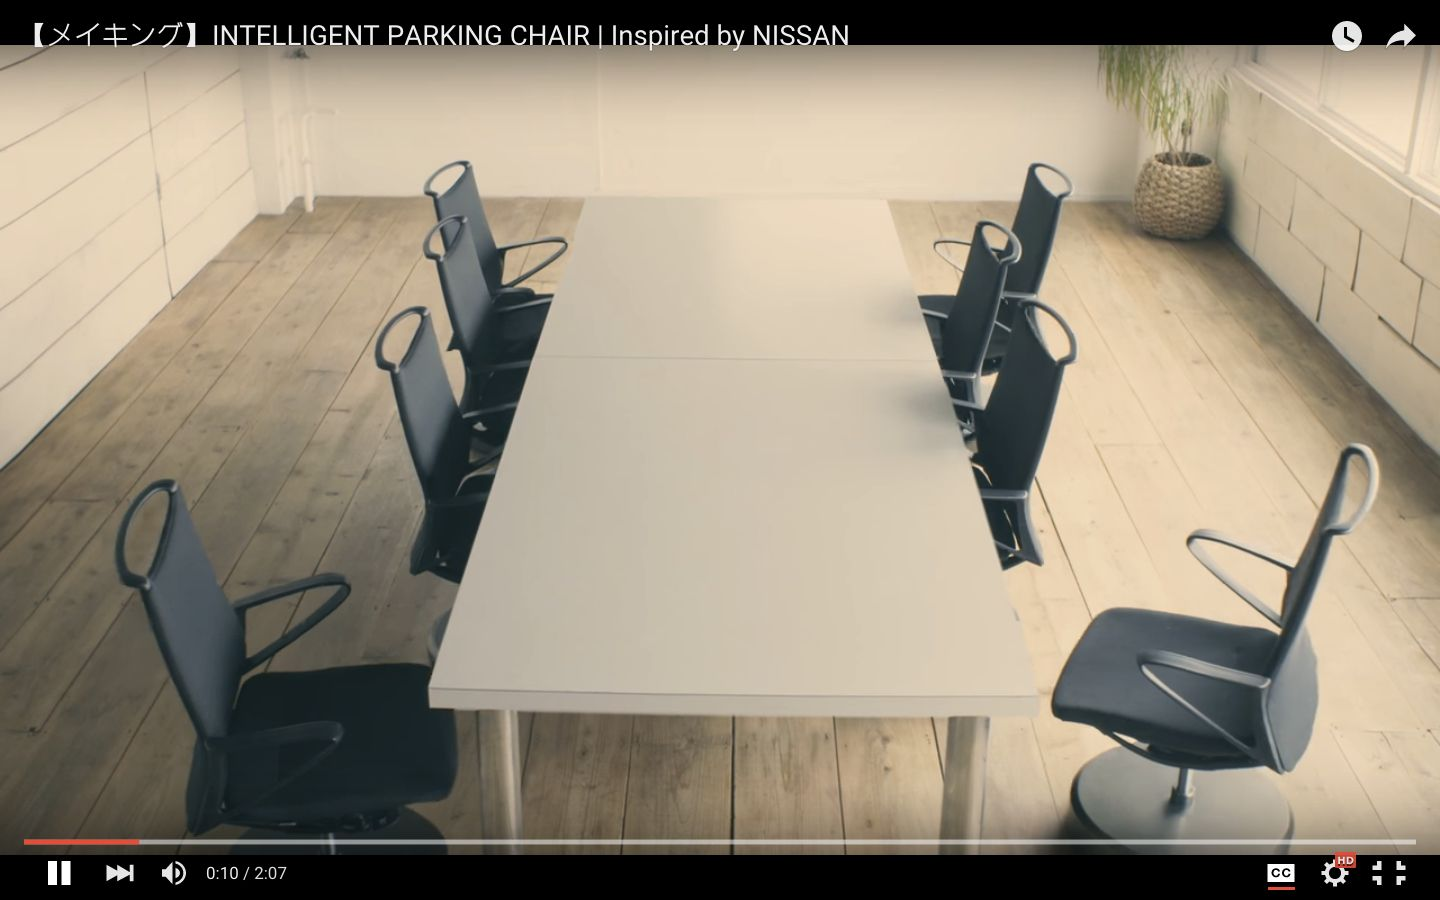 Nissan's self-parking chairs keep lazy offices tidy